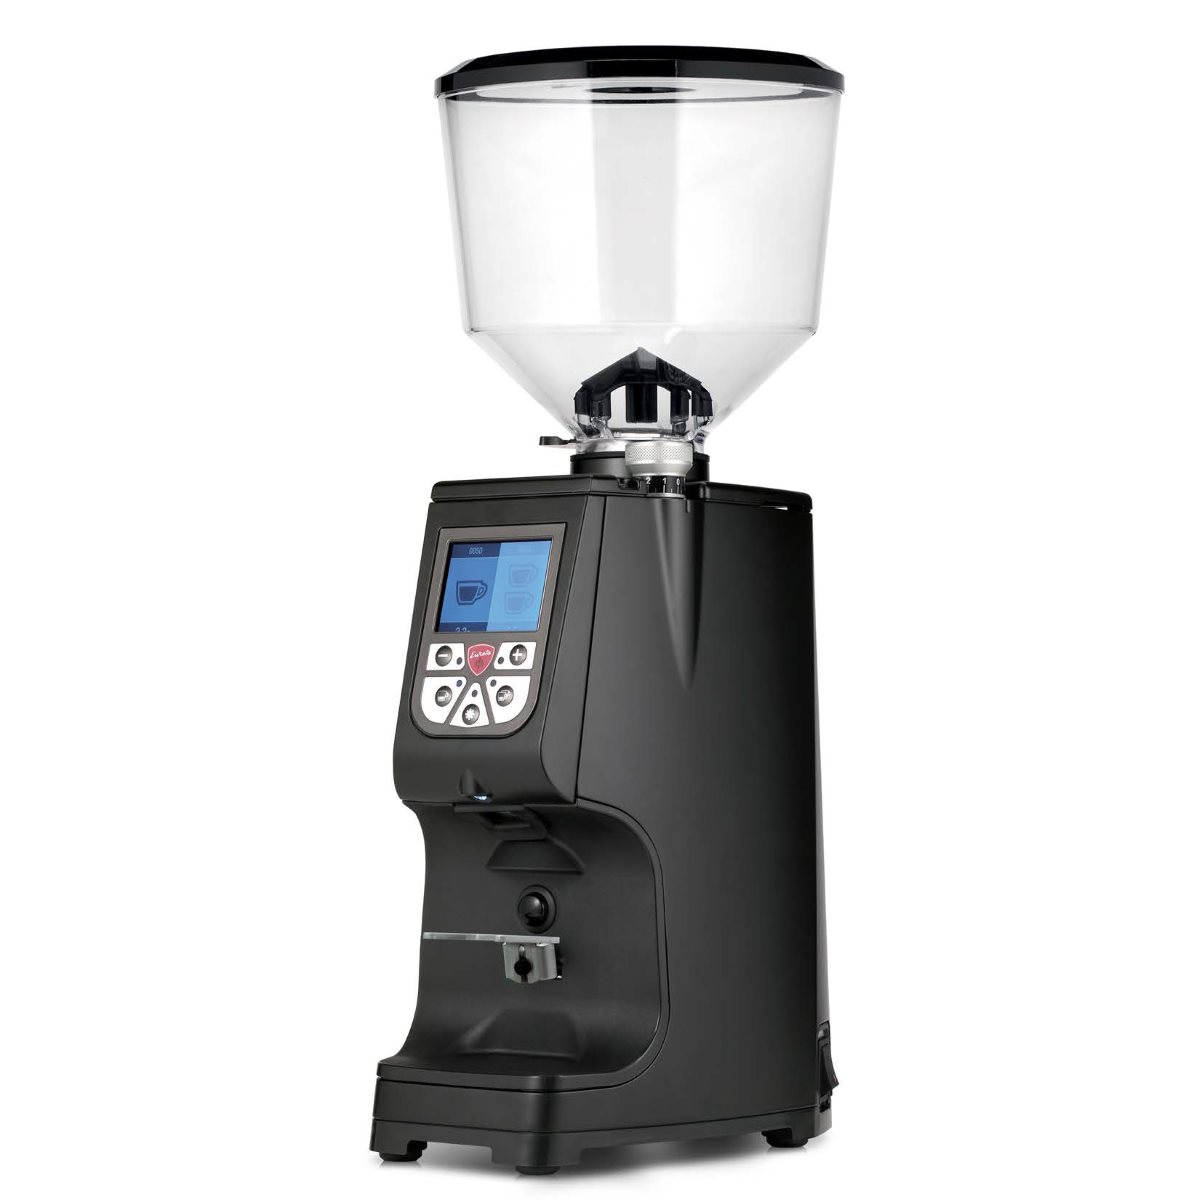 Electronic coffee grinder Eureka Atom Specialty 75